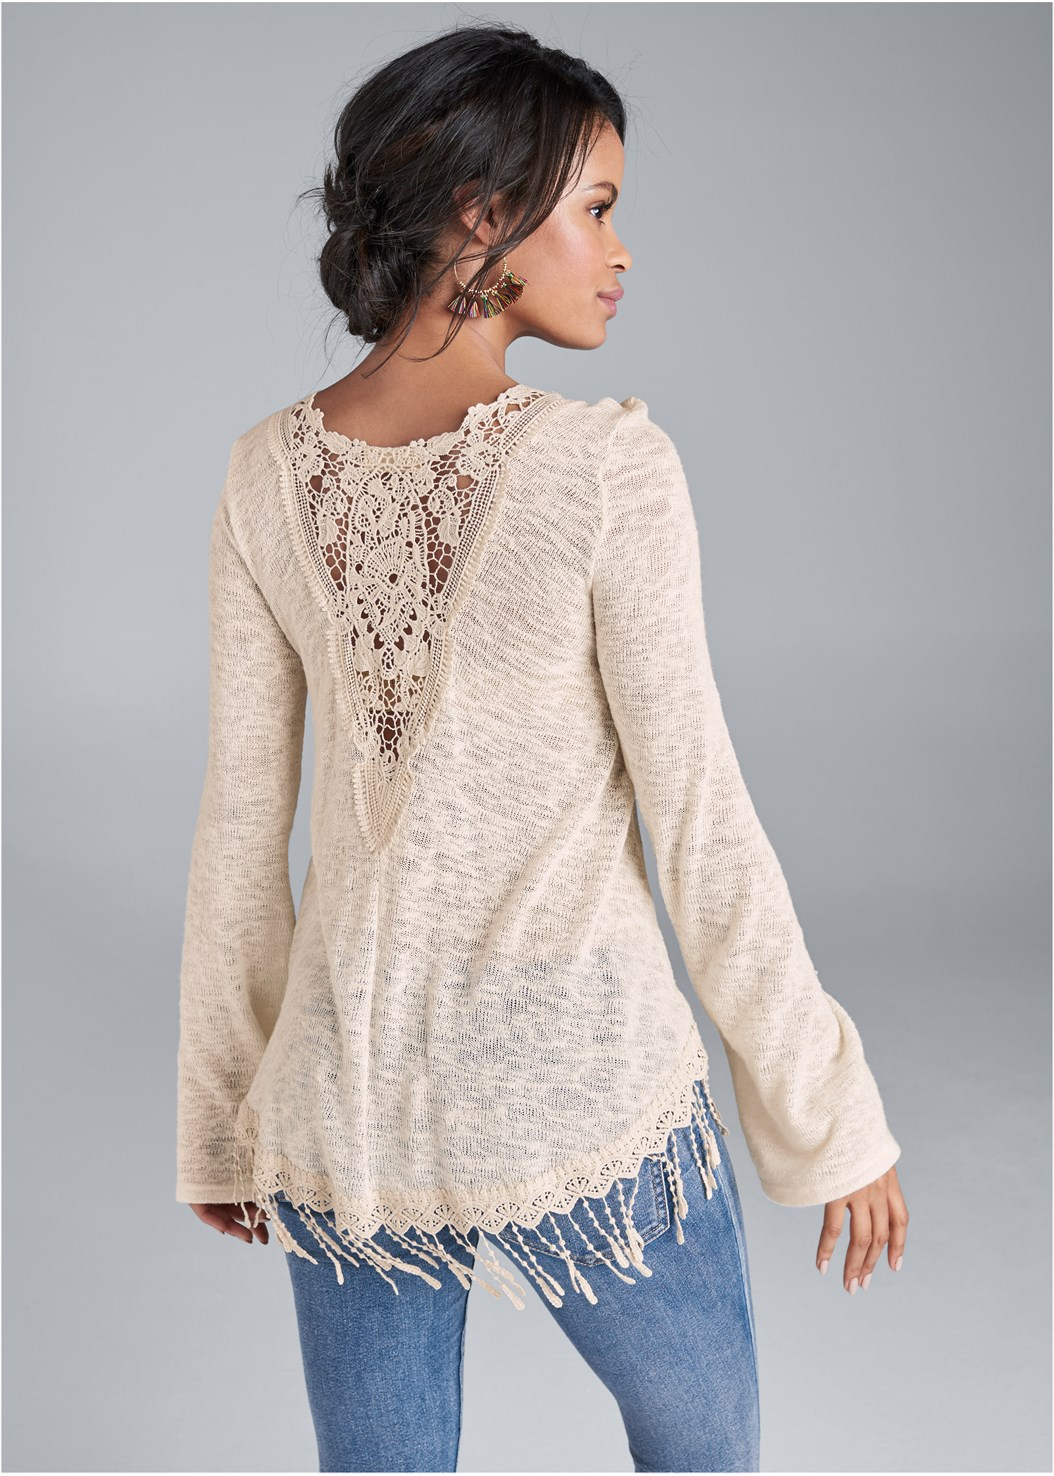 Fringe Casual Top,Mid Rise Color Skinny Jeans,Strapless Bra With Geo Lace,Lace Up Tall Boots,Ankle Strap Heels,Tassel Hoops